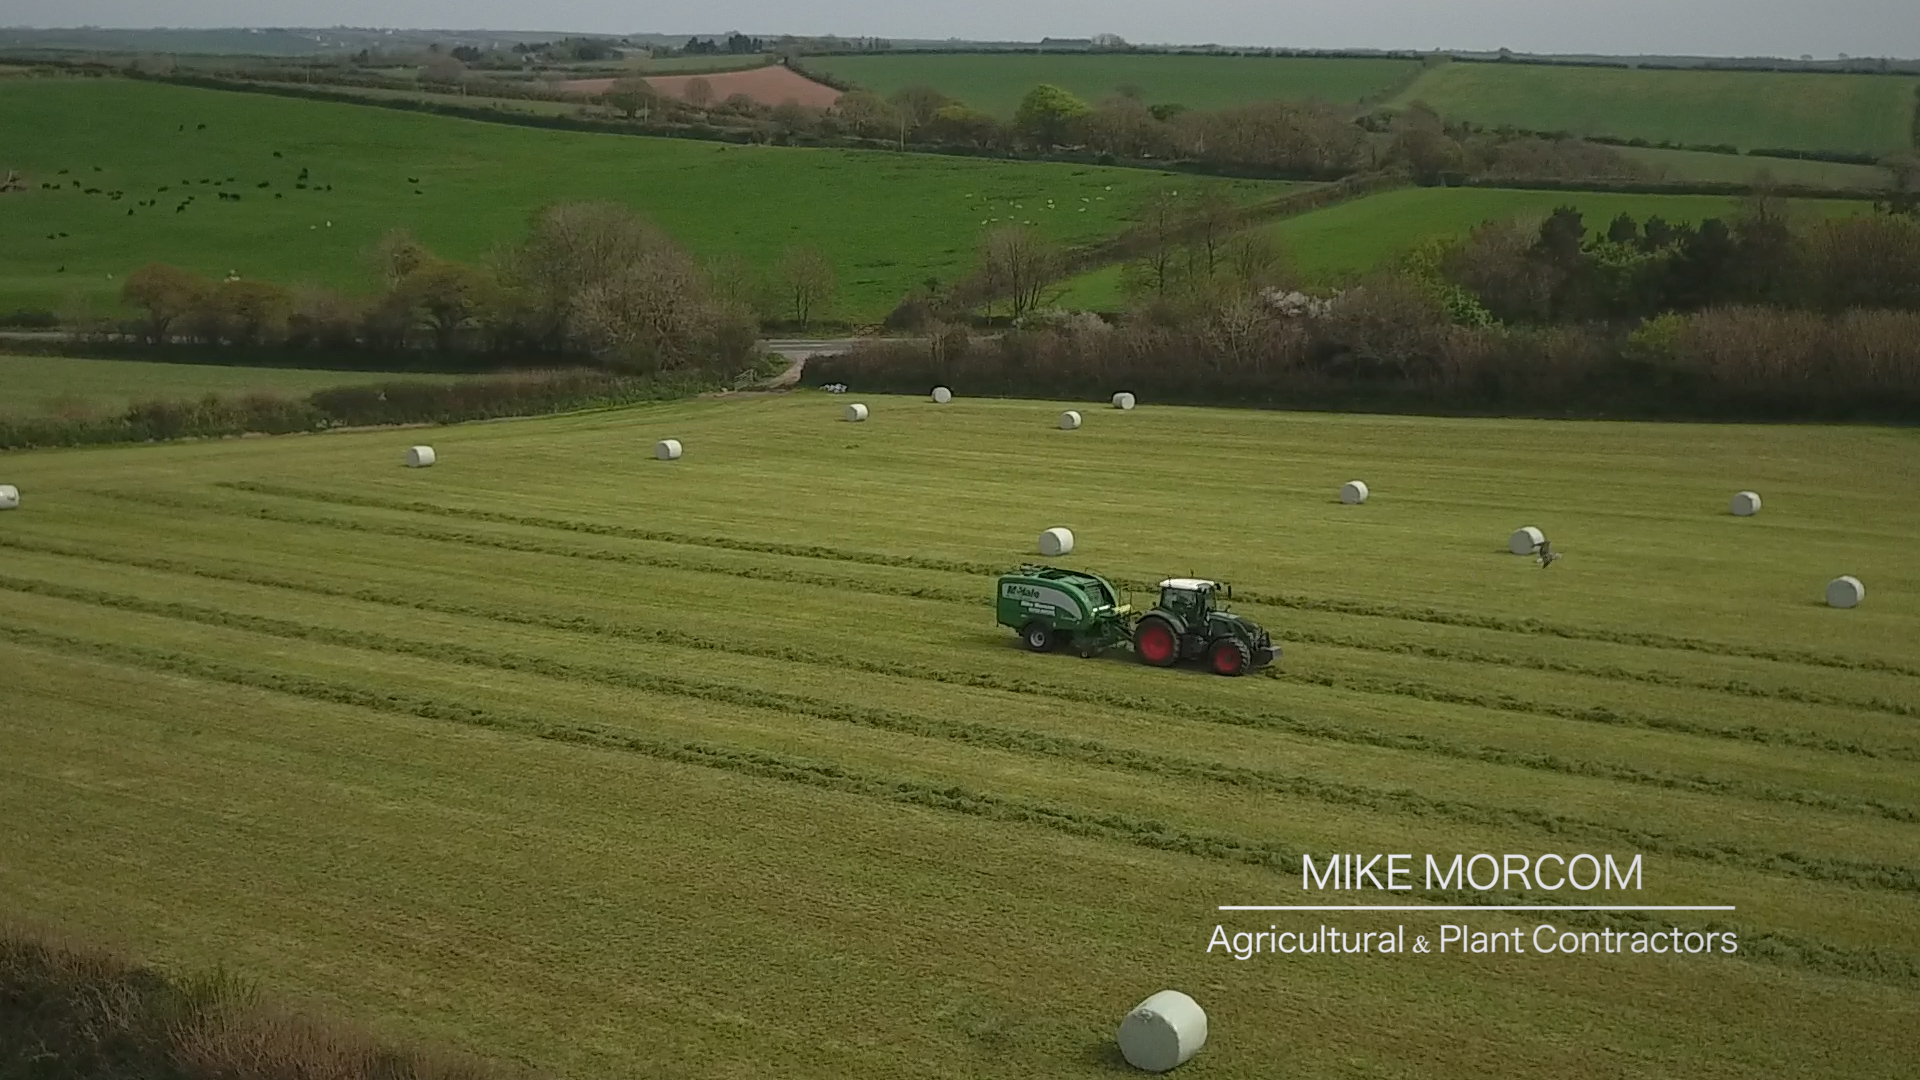 Mike Morcom Agricultural & Plant Hire in Cornwall Contractors banner vid still